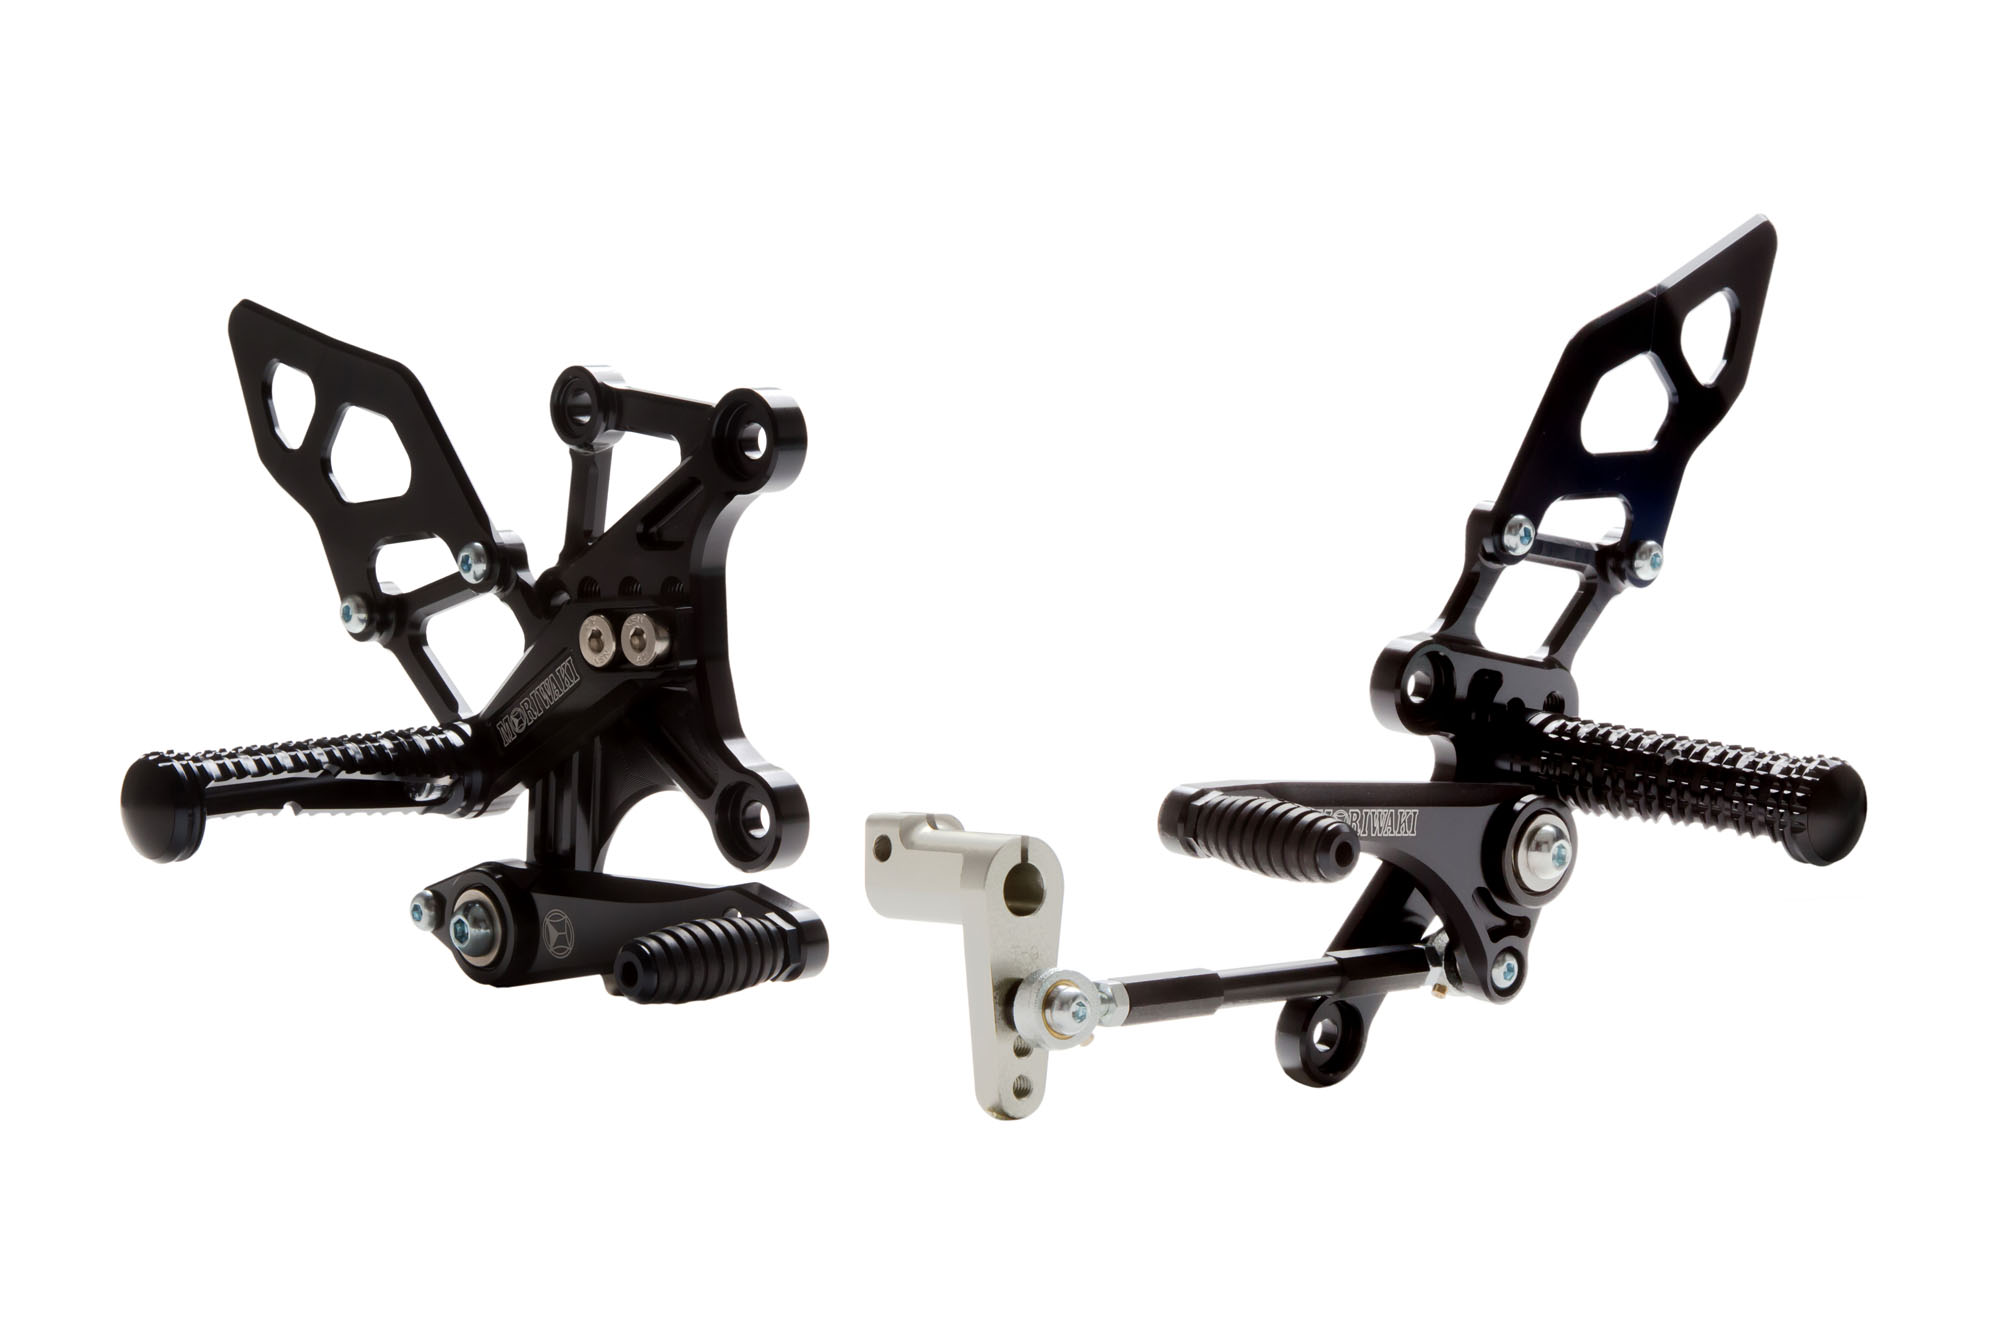 Ninja400/250 18-、Z250/400 19- BACK STEP KIT BLACK